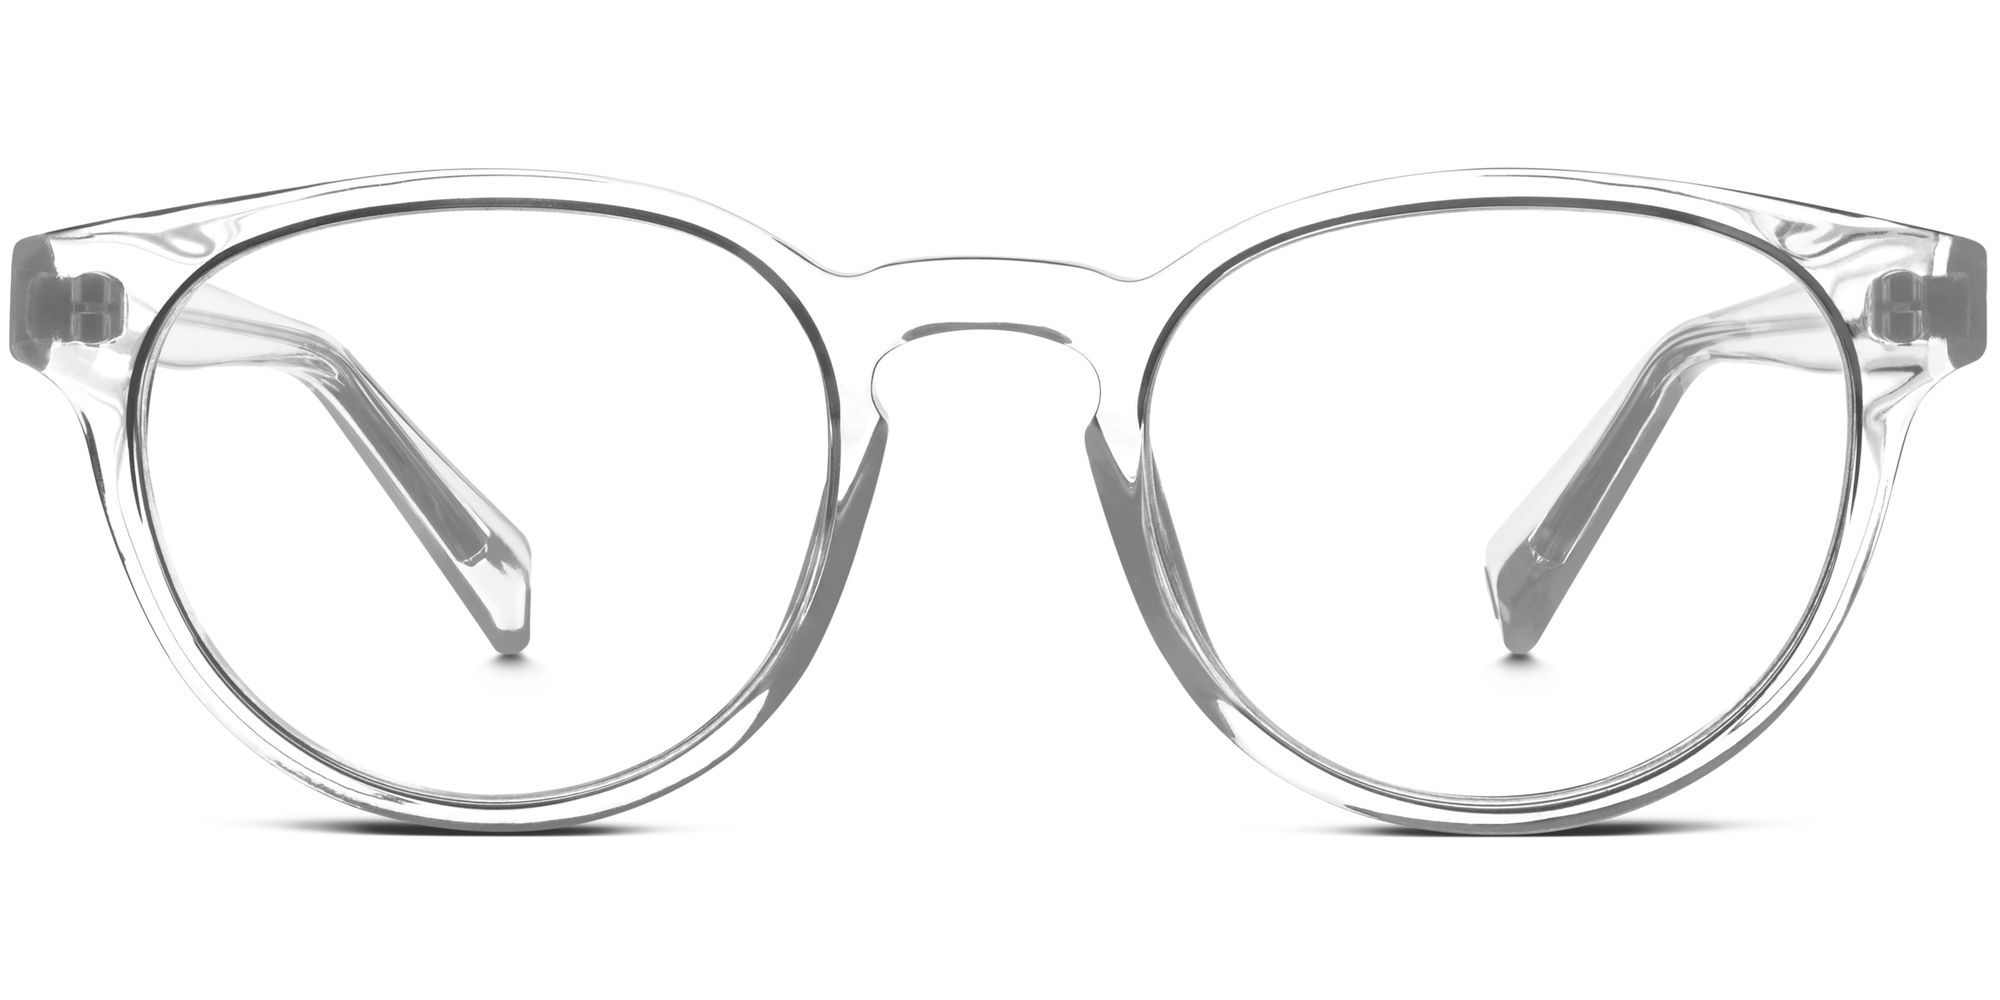 29f705c919 Warby Parker - Percey in Crystal. I love the clear plastic glasses...goes  with everything.